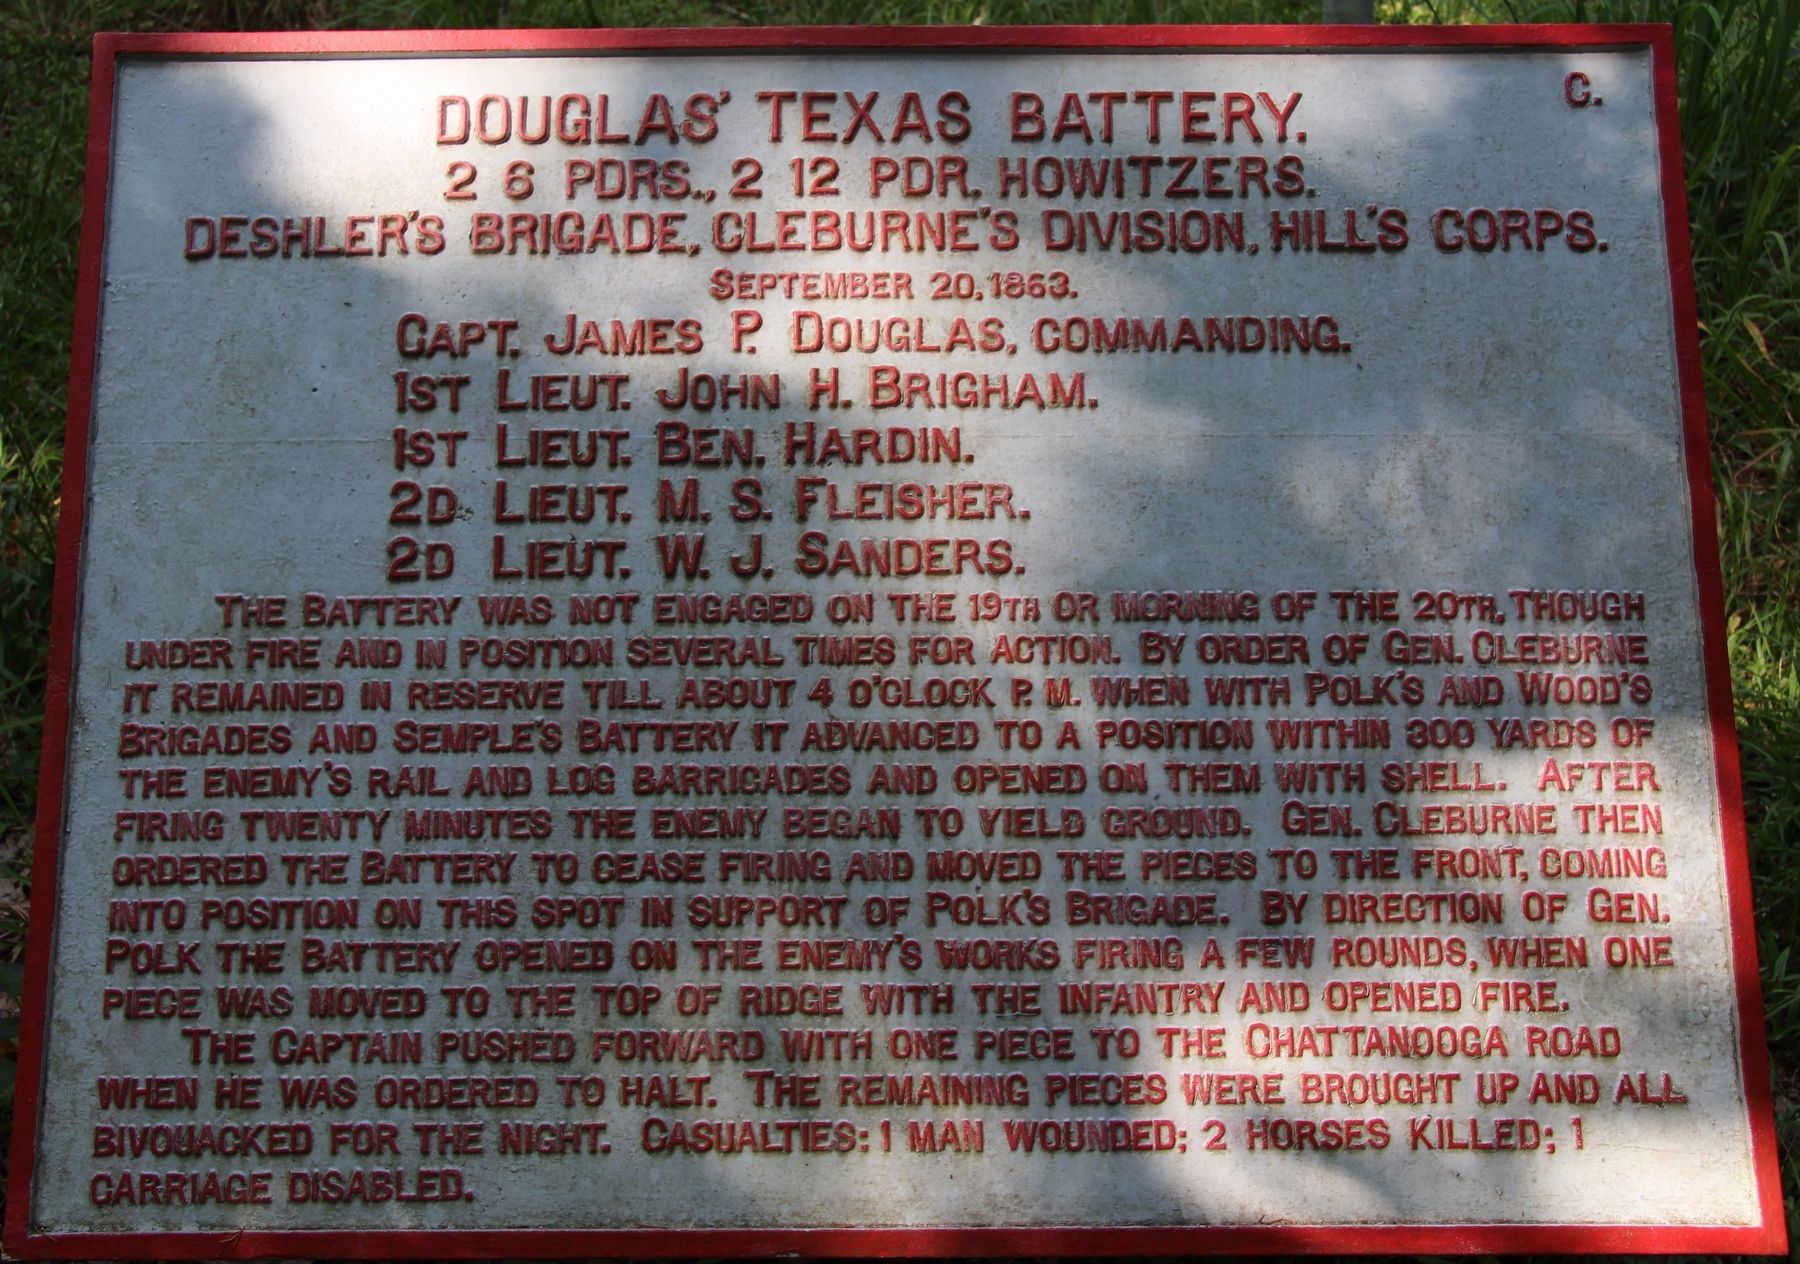 Photo by By Dale K. Benington, July 12, 2017, retrieved from: https://www.hmdb.org/PhotoFullSize.asp?PhotoID=393262  The wrought iron plaque commemorates Douglas' Artillery and the men who served in it in specific detail.